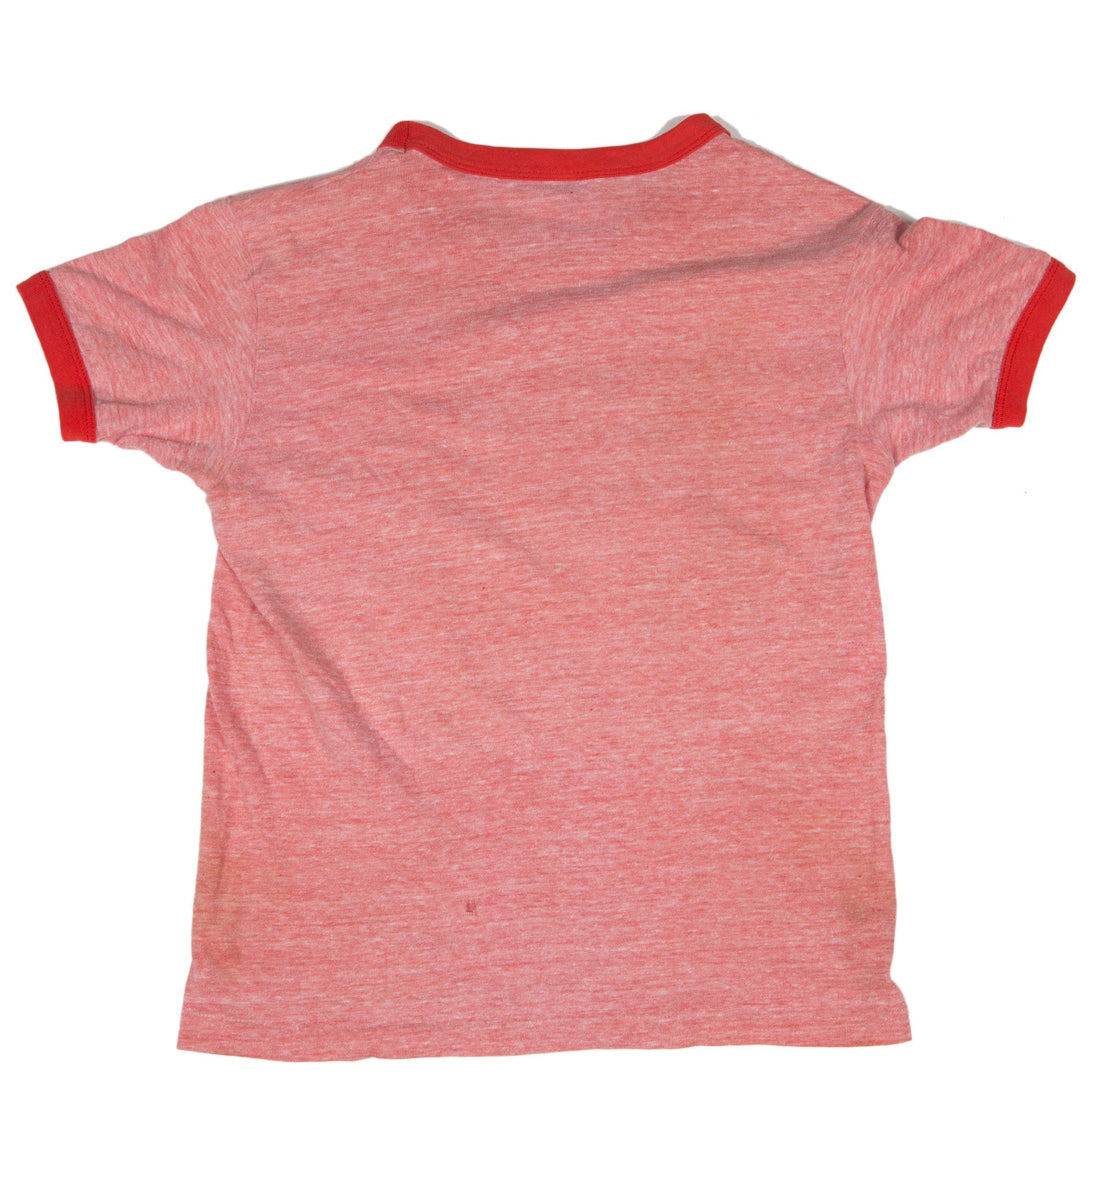 Vintage 70's Hanes Red Motorcycle Tee, XS/S - Vintage - Iron and Resin